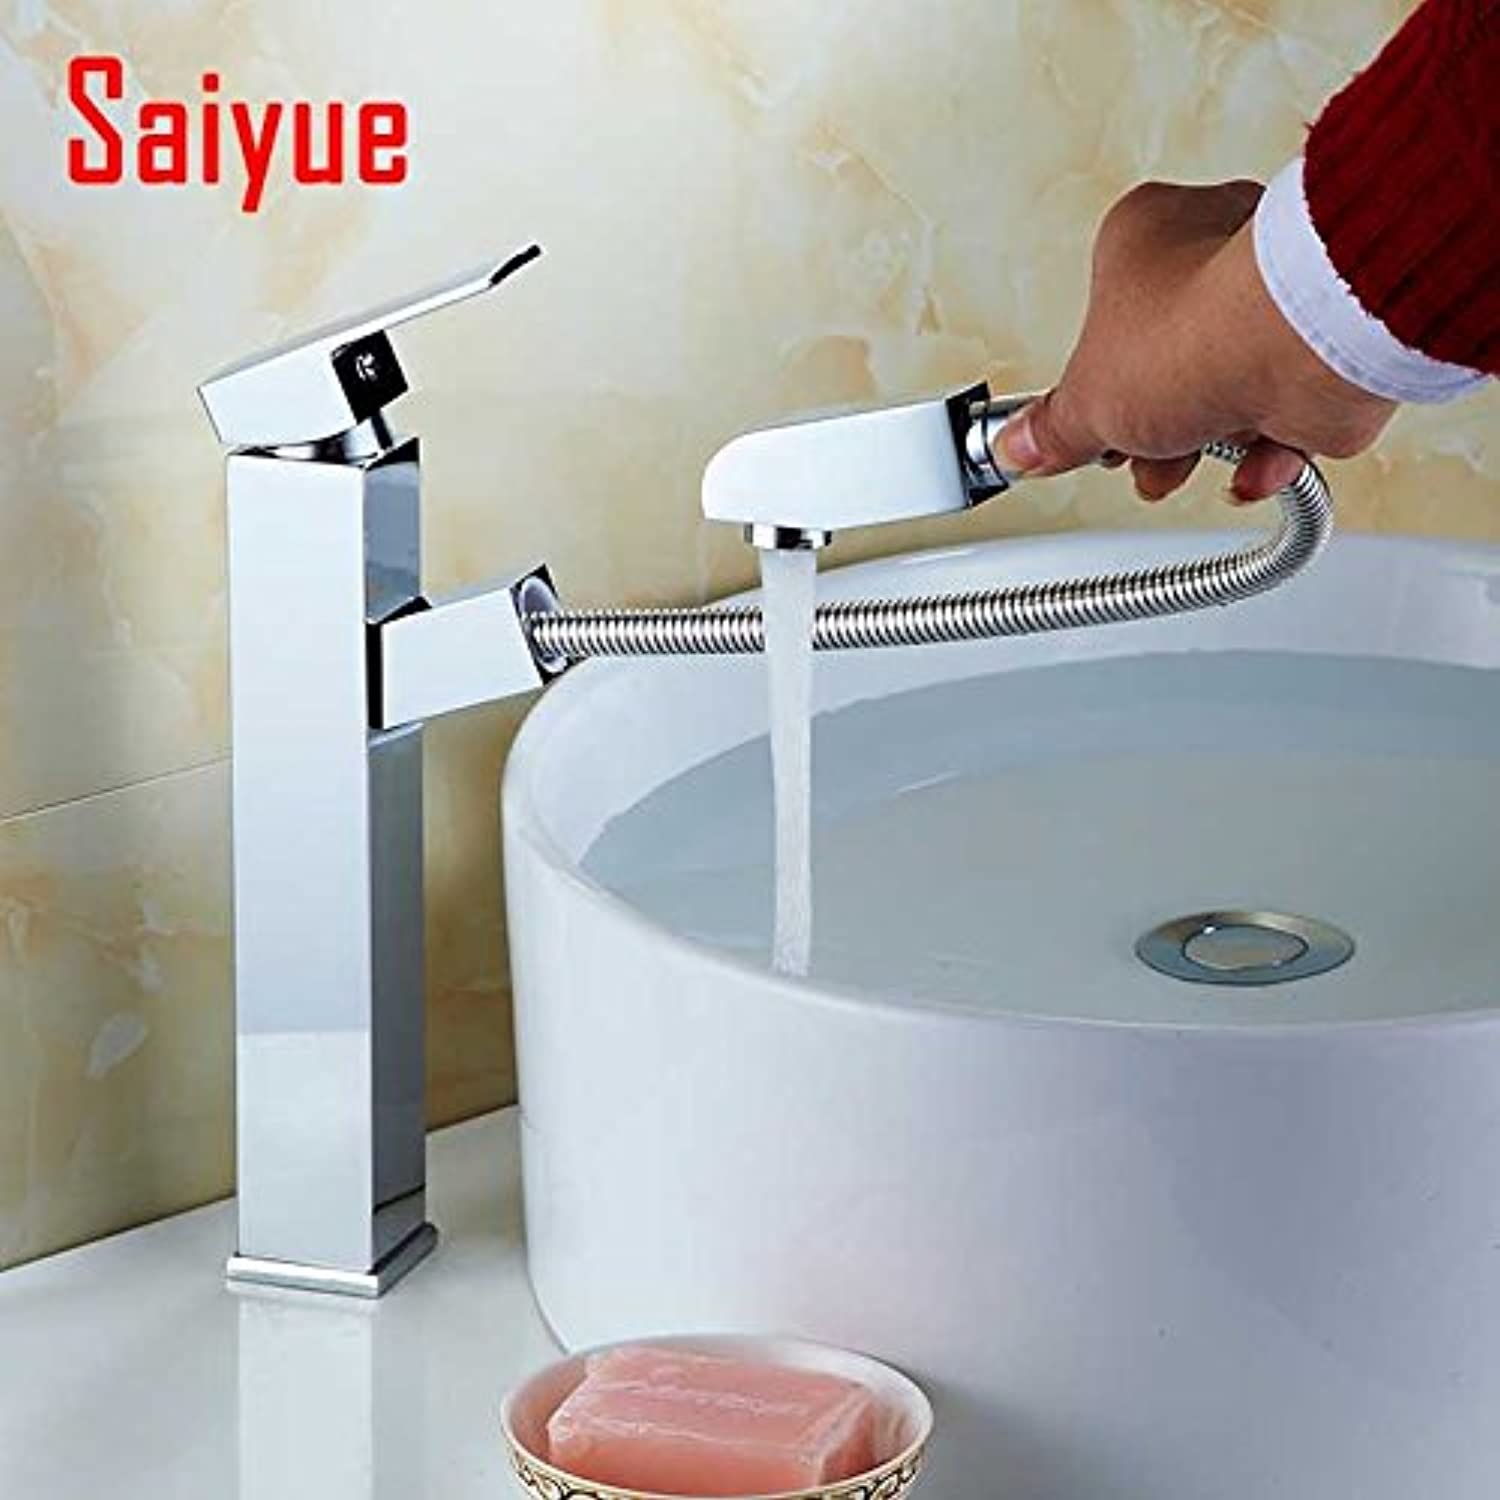 Maifeini Washbasins Mixer Pulled Out Of The Water Copper Fittings Polished Chrome Plated Bathroom Sink Tap